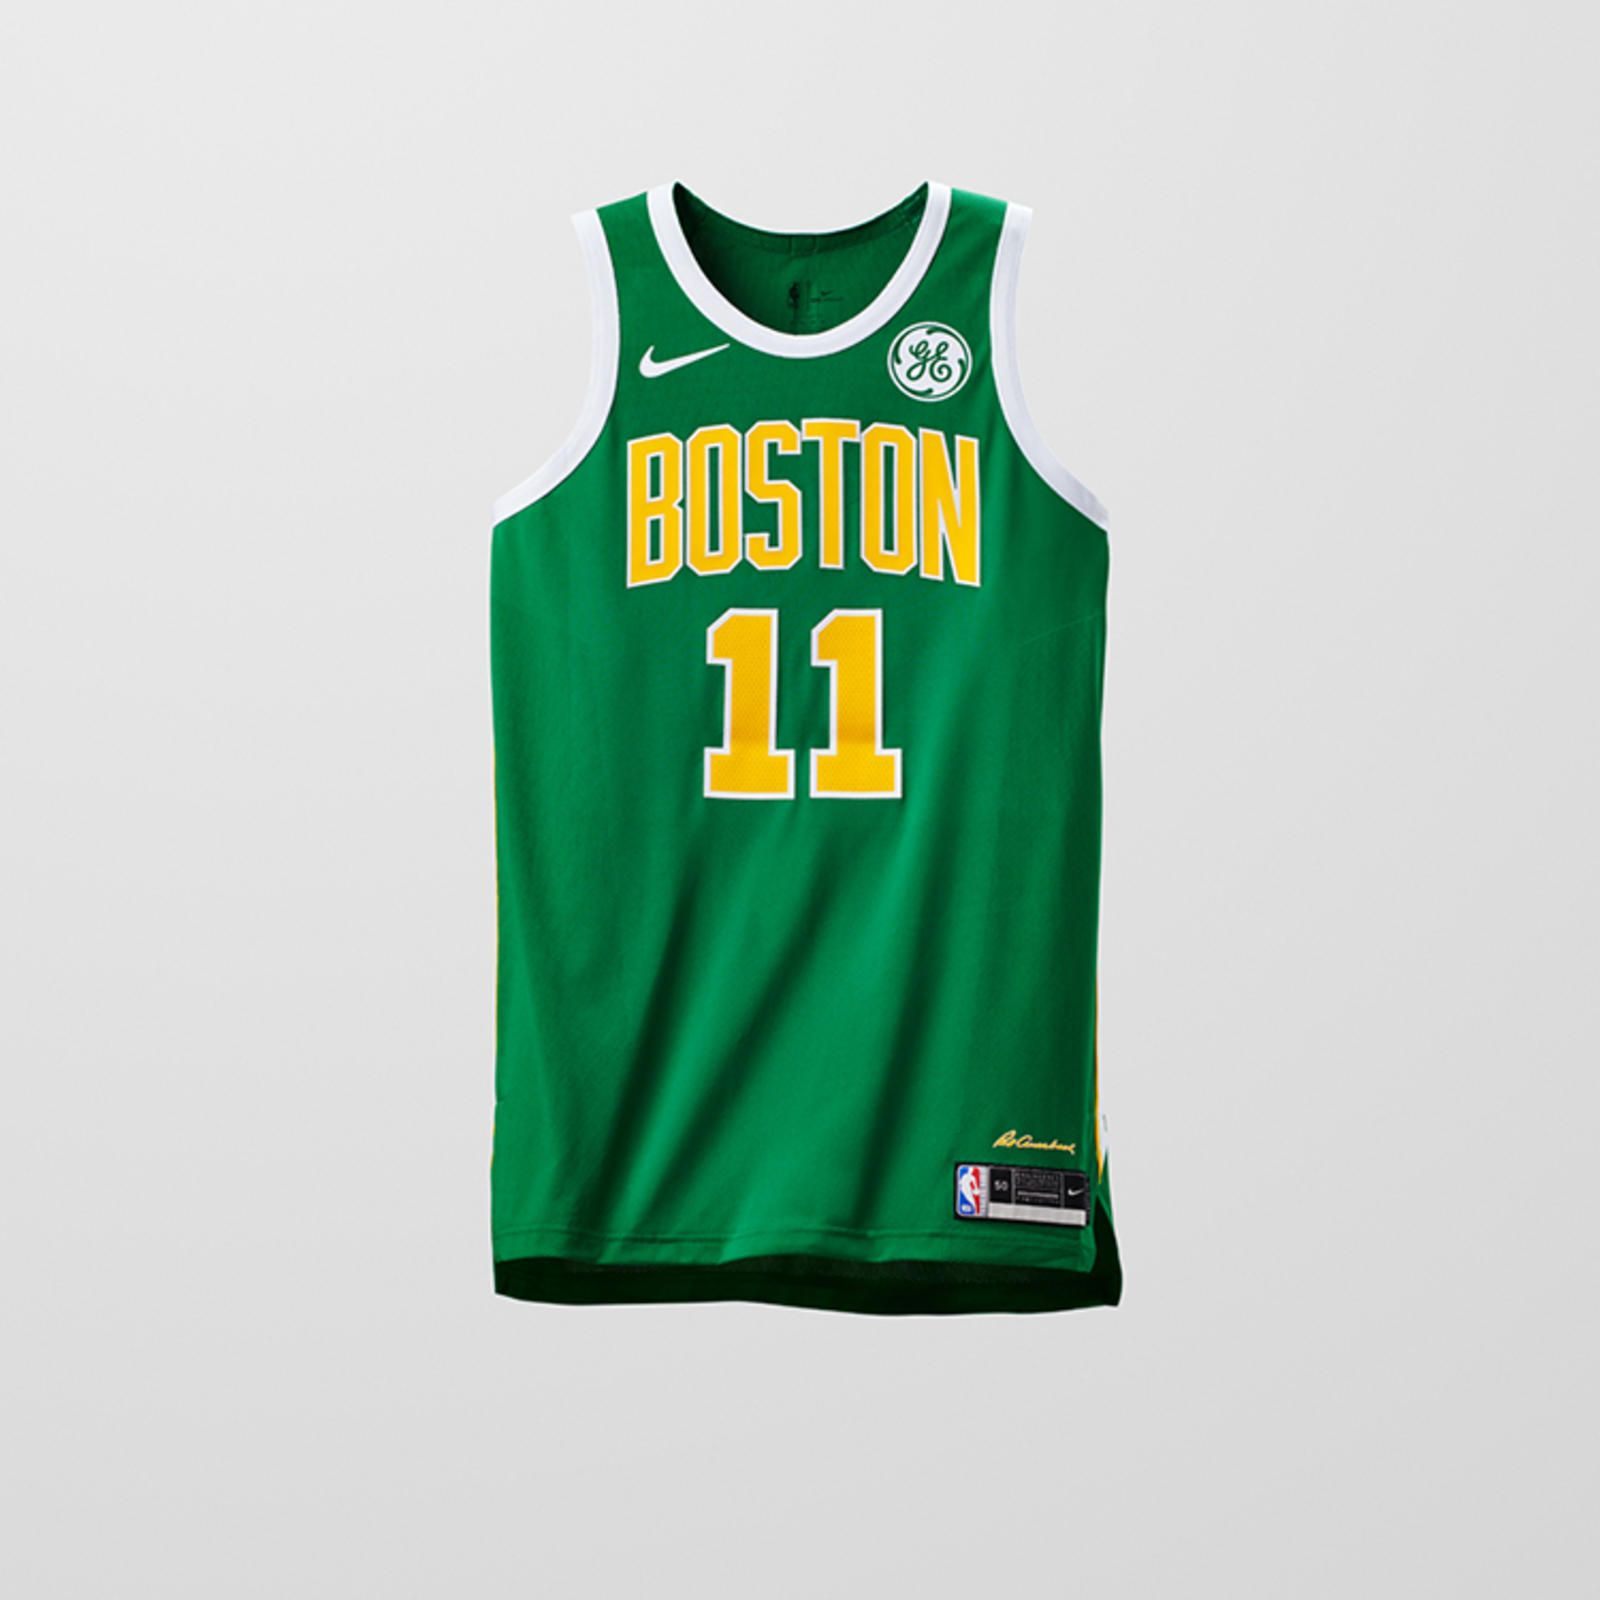 9931f7014227 Introducing the Nike x NBA EARNED Edition Uniforms 1